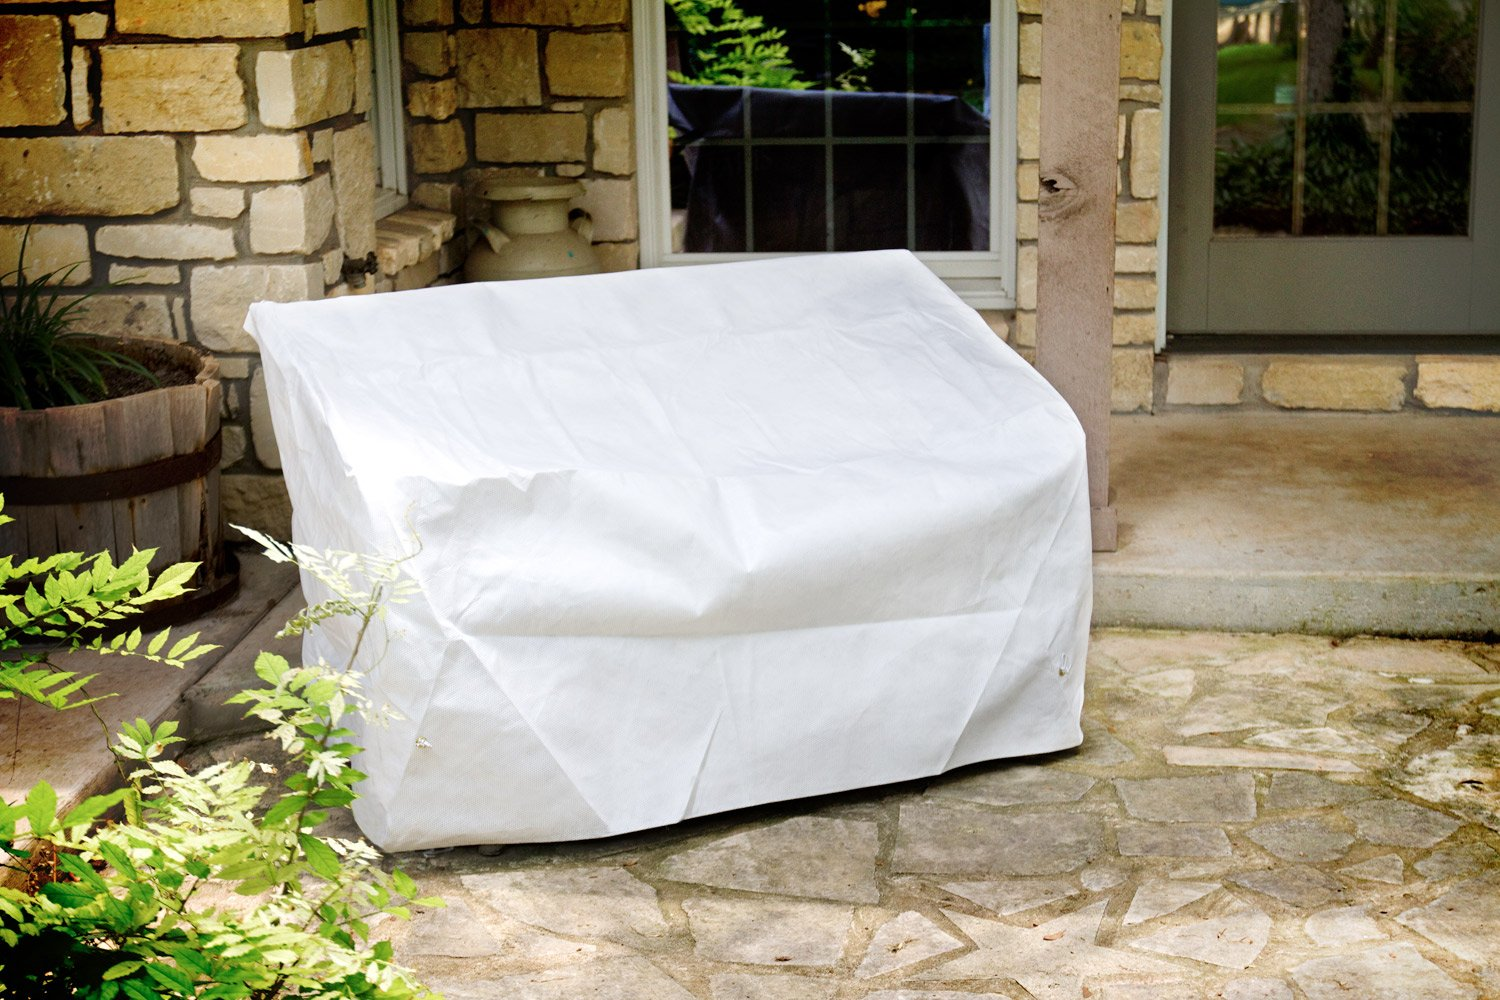 KoverRoos DuPont Tyvek 24202 4-Feet Bench/Glider Cover, 51-Inch Width by 26-Inch Diameter by 35-Inch Height, White by KOVERROOS (Image #4)